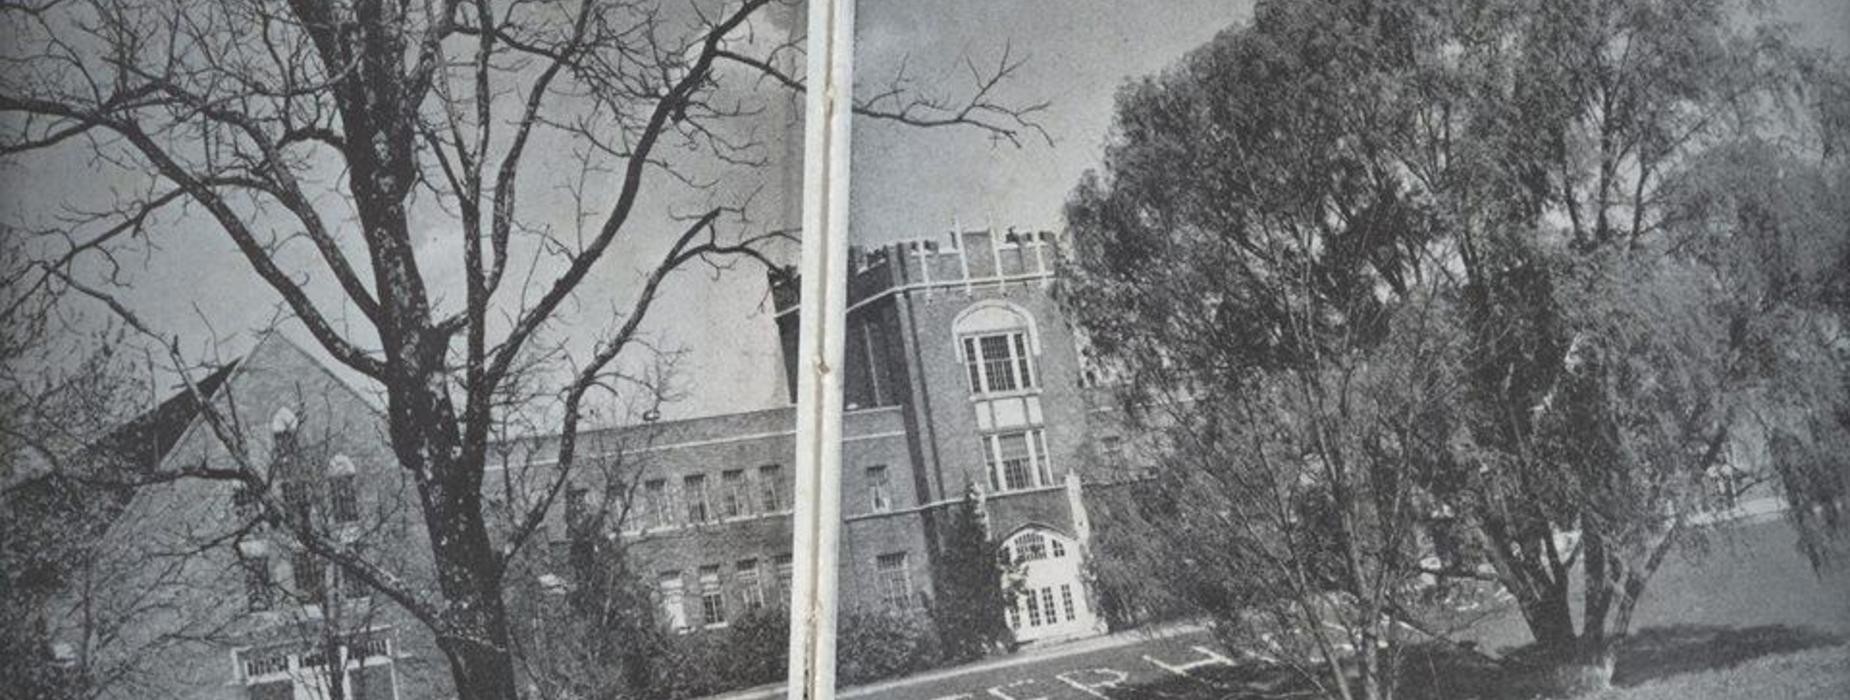 Early picture of front of SHS